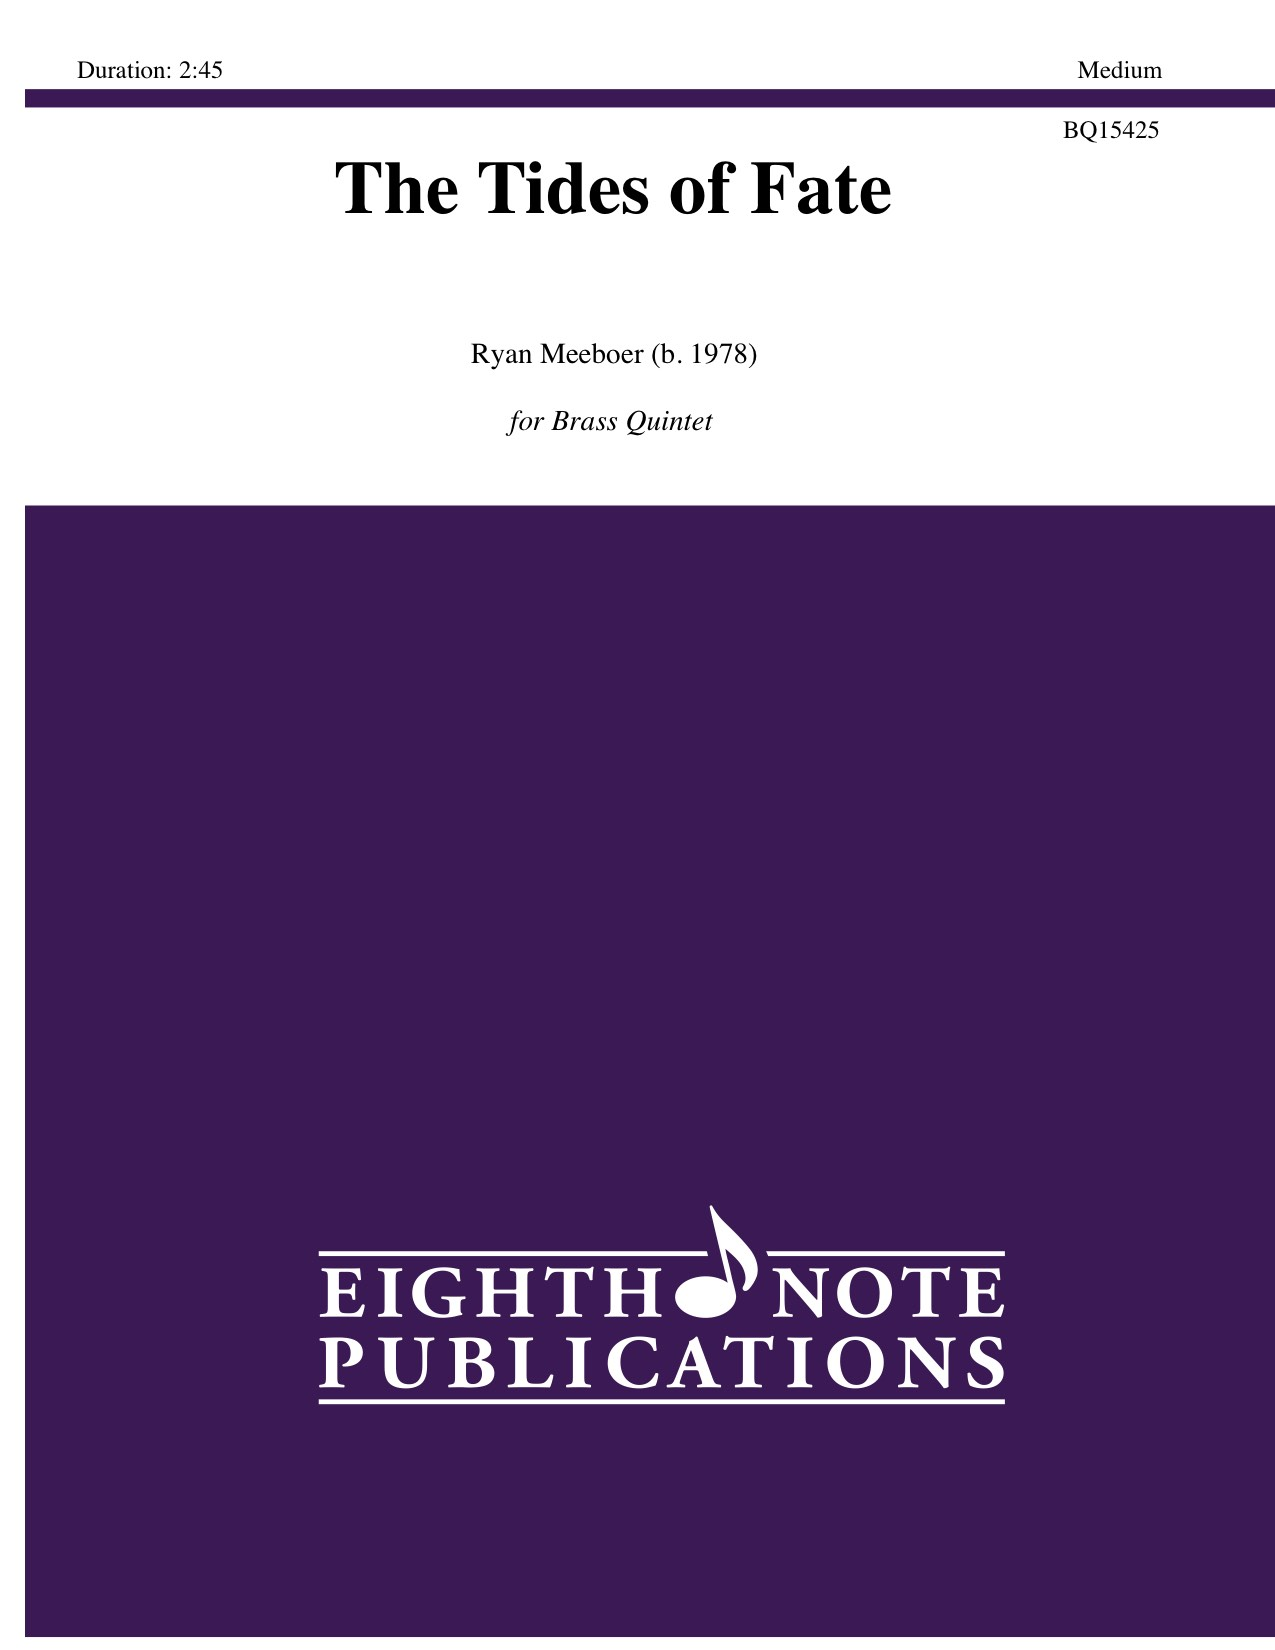 Tides of Fate, The - Ryan Meeboer